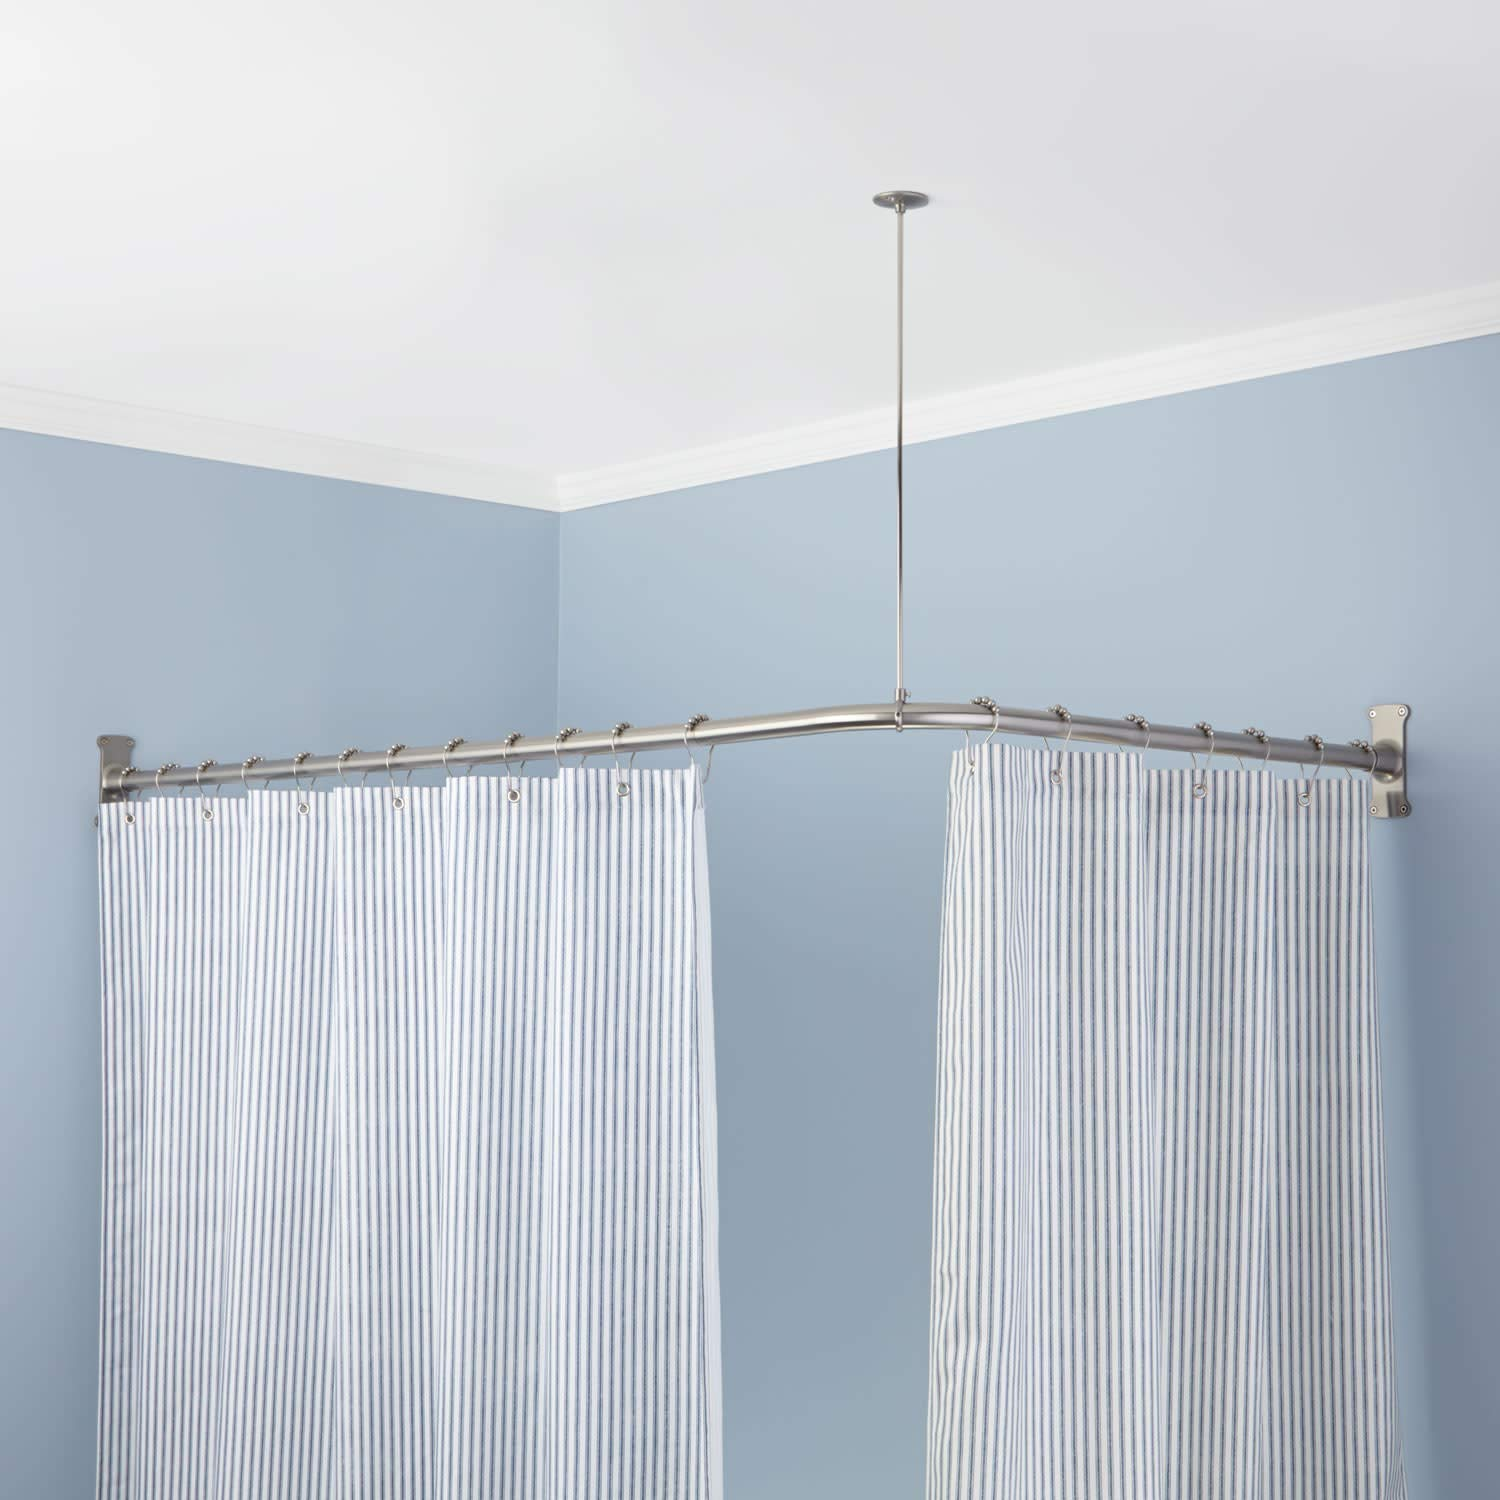 Signature Hardware 198958 60'' x 30'' Corner Shower Curtain Rod by Signature Hardware (Image #1)